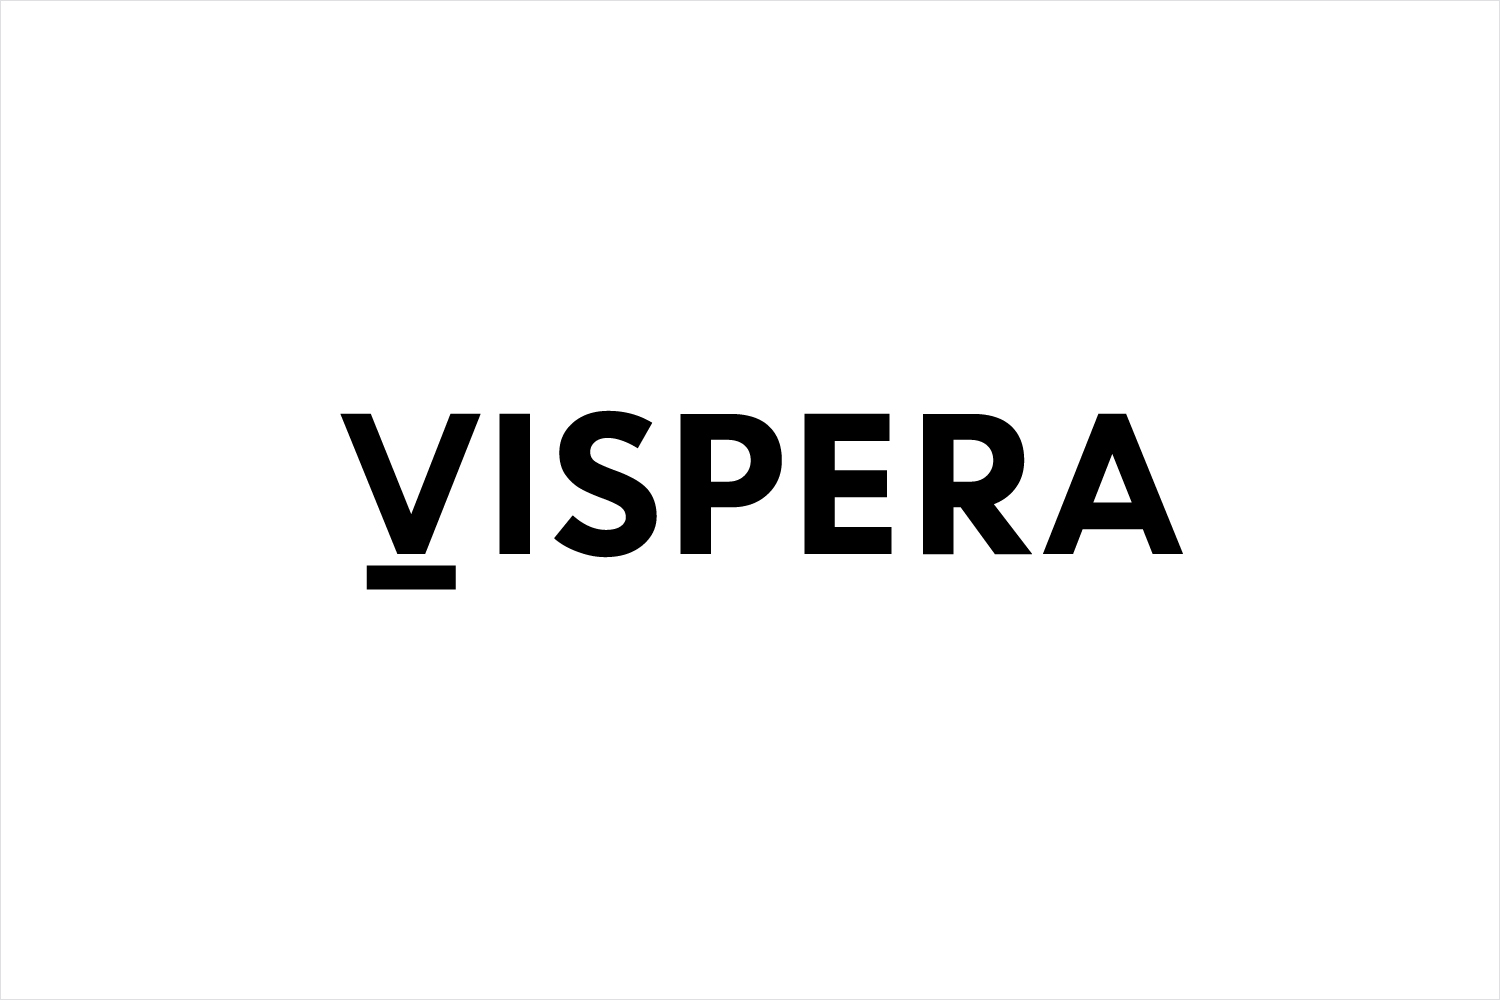 Logotype created by Stockholm Design Lab for Víspera Coffee, a range of 100% Arabica beans sourced from the high altitude plantations of Columbia.